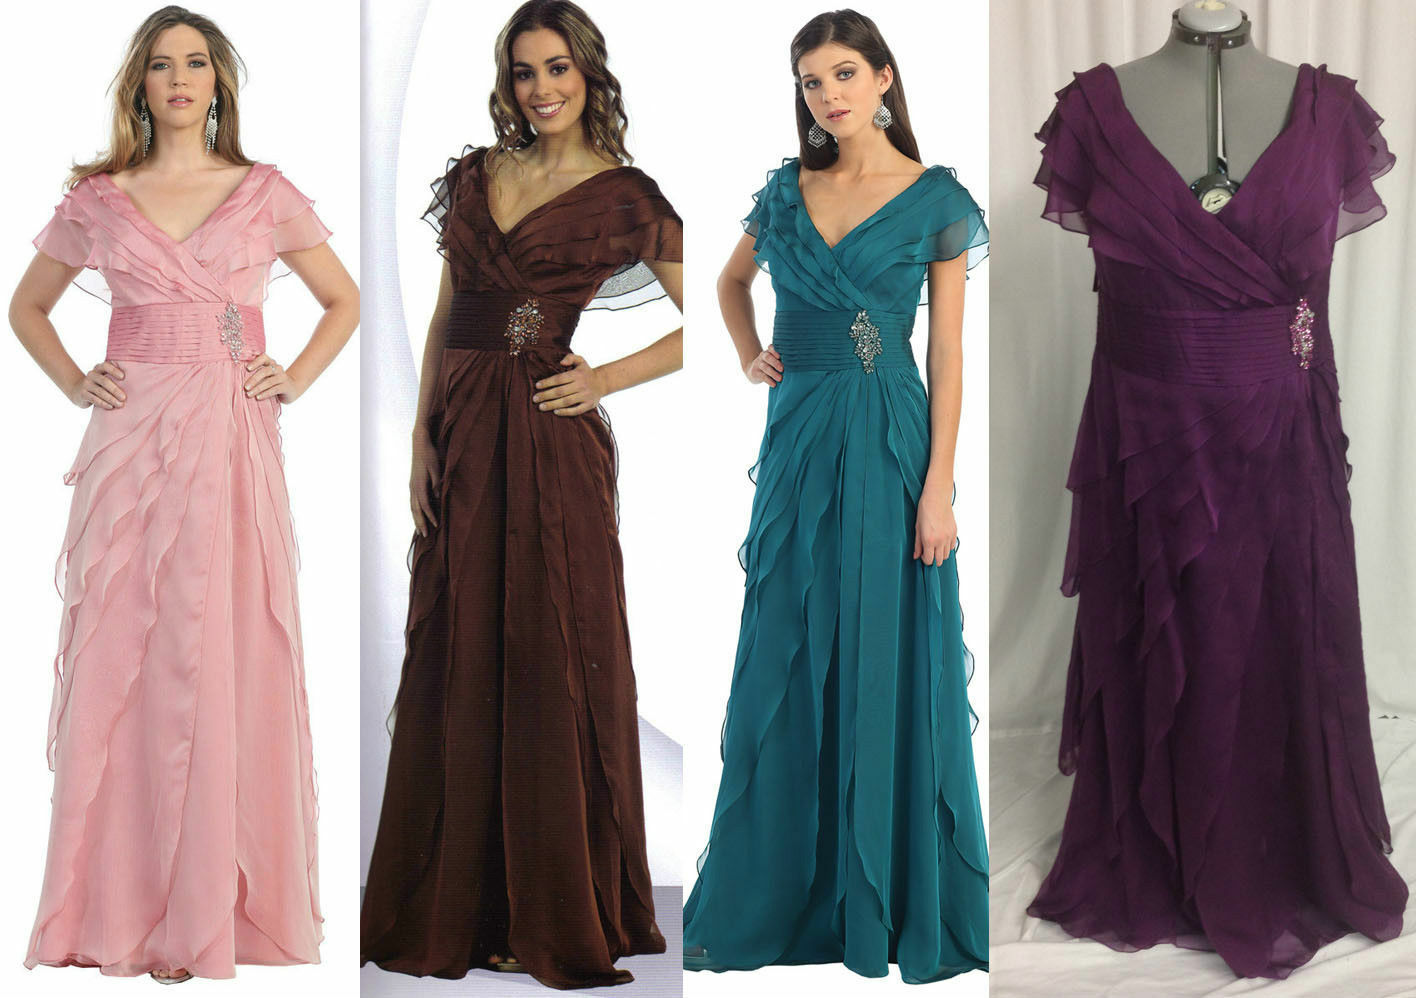 Eggplant Mother of Bride/Groom Dress Party Prom Evening Cocktail 4XL Fit 18